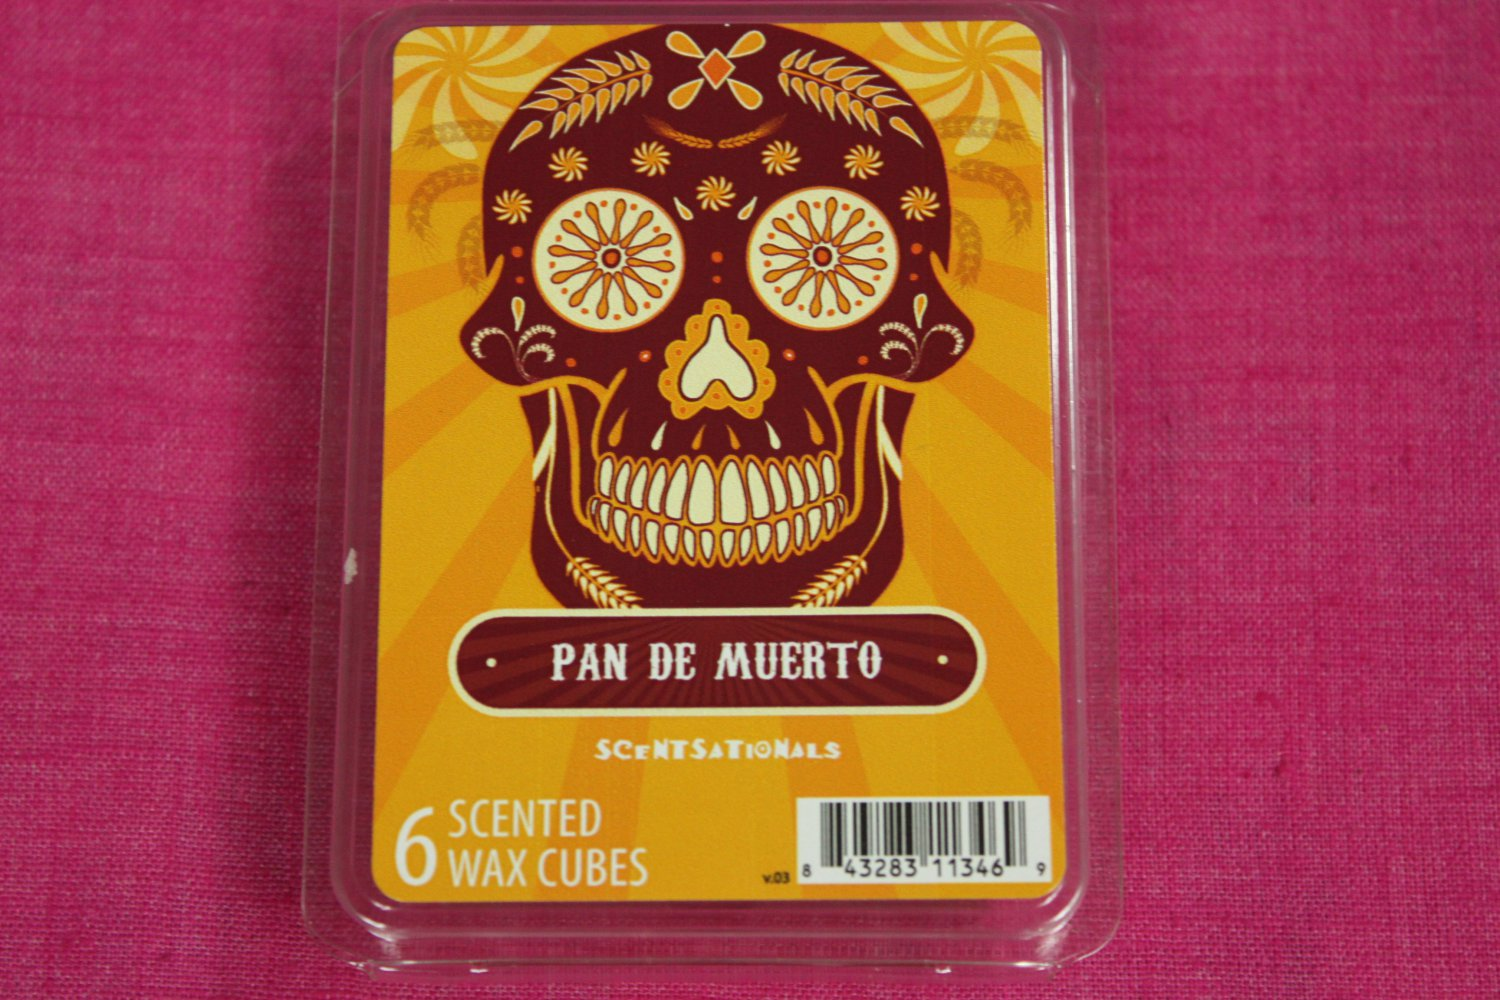 Scentsationals Pan De Muerto Wax Melt Cubes Special Day of the Dead Edition